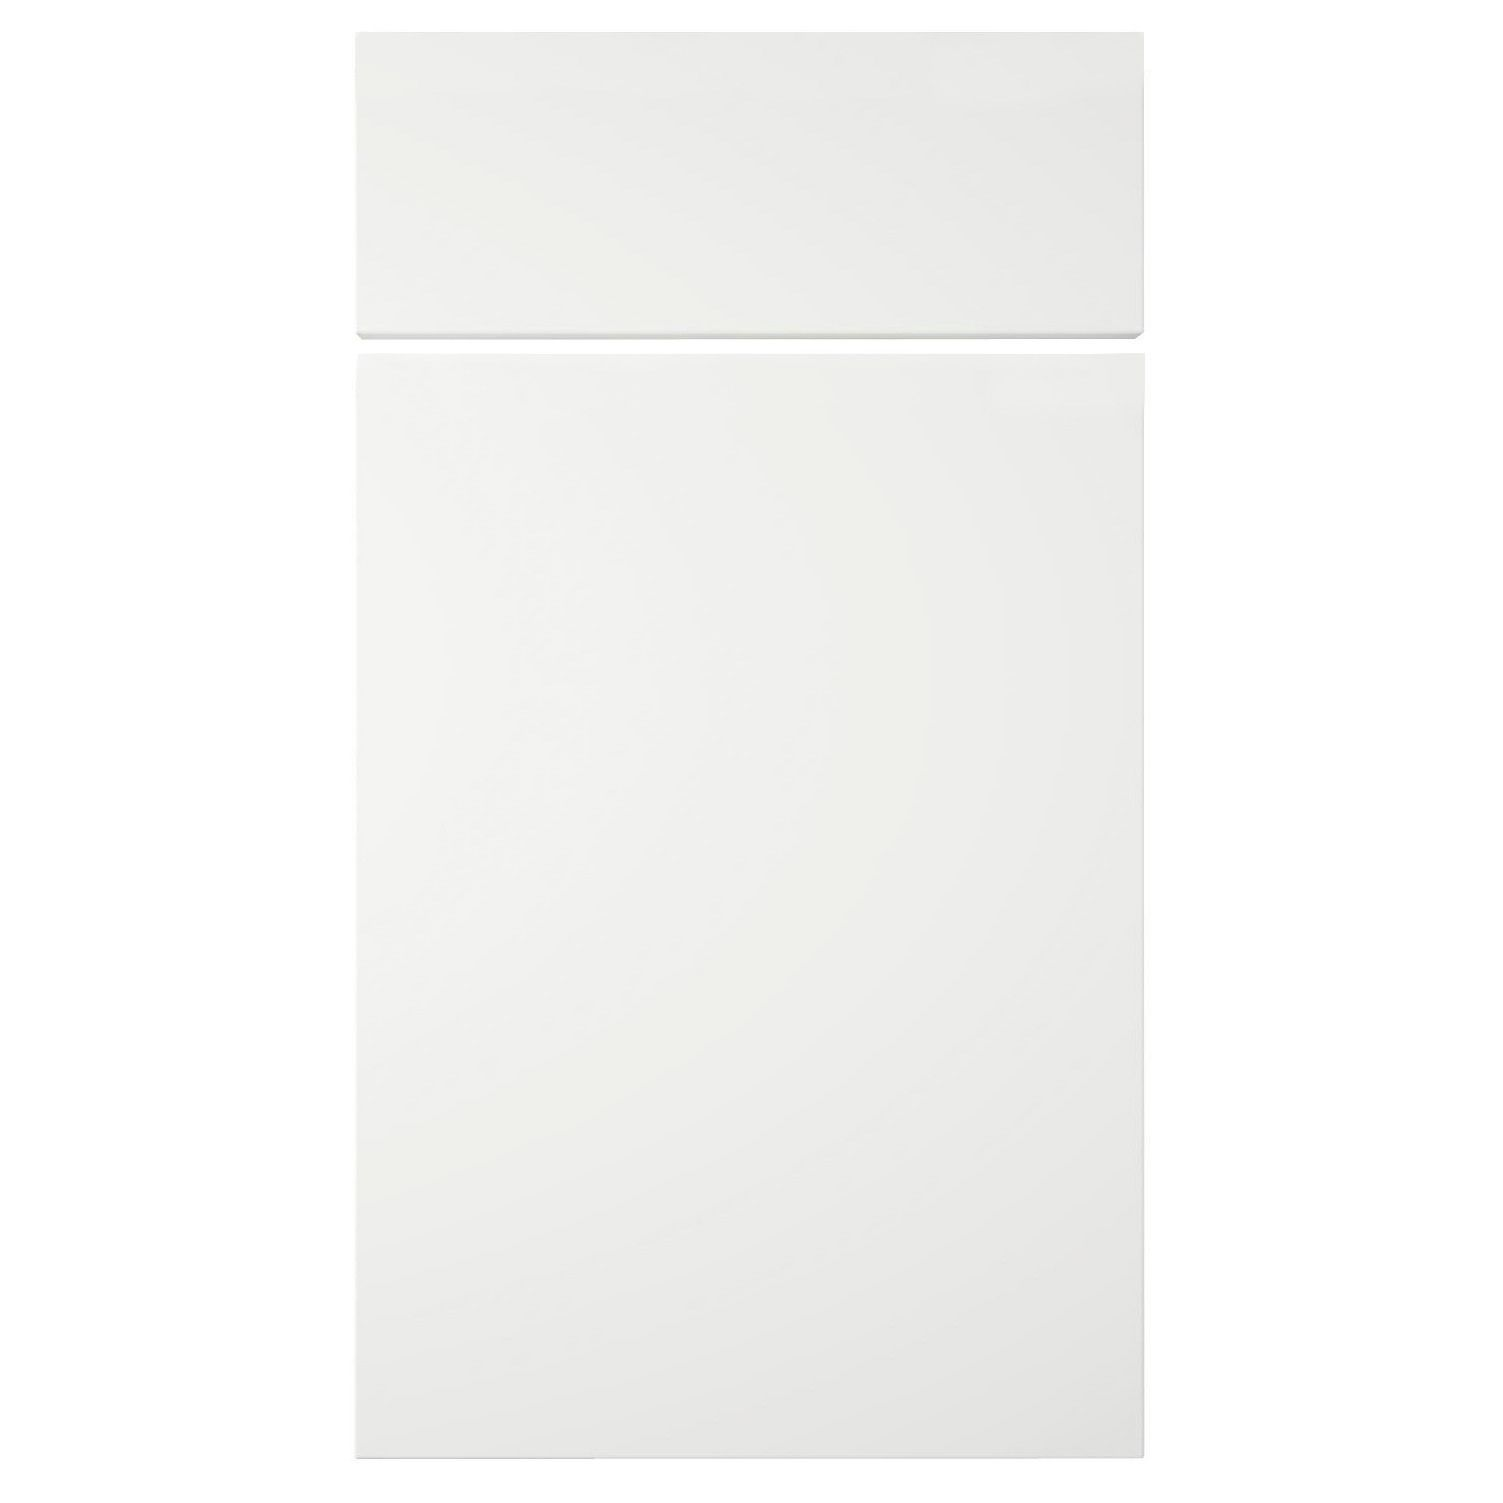 It Kitchens Sandford Ivory Style Slab Drawerline Door & Drawer Front (w)400mm, Pack Of 1